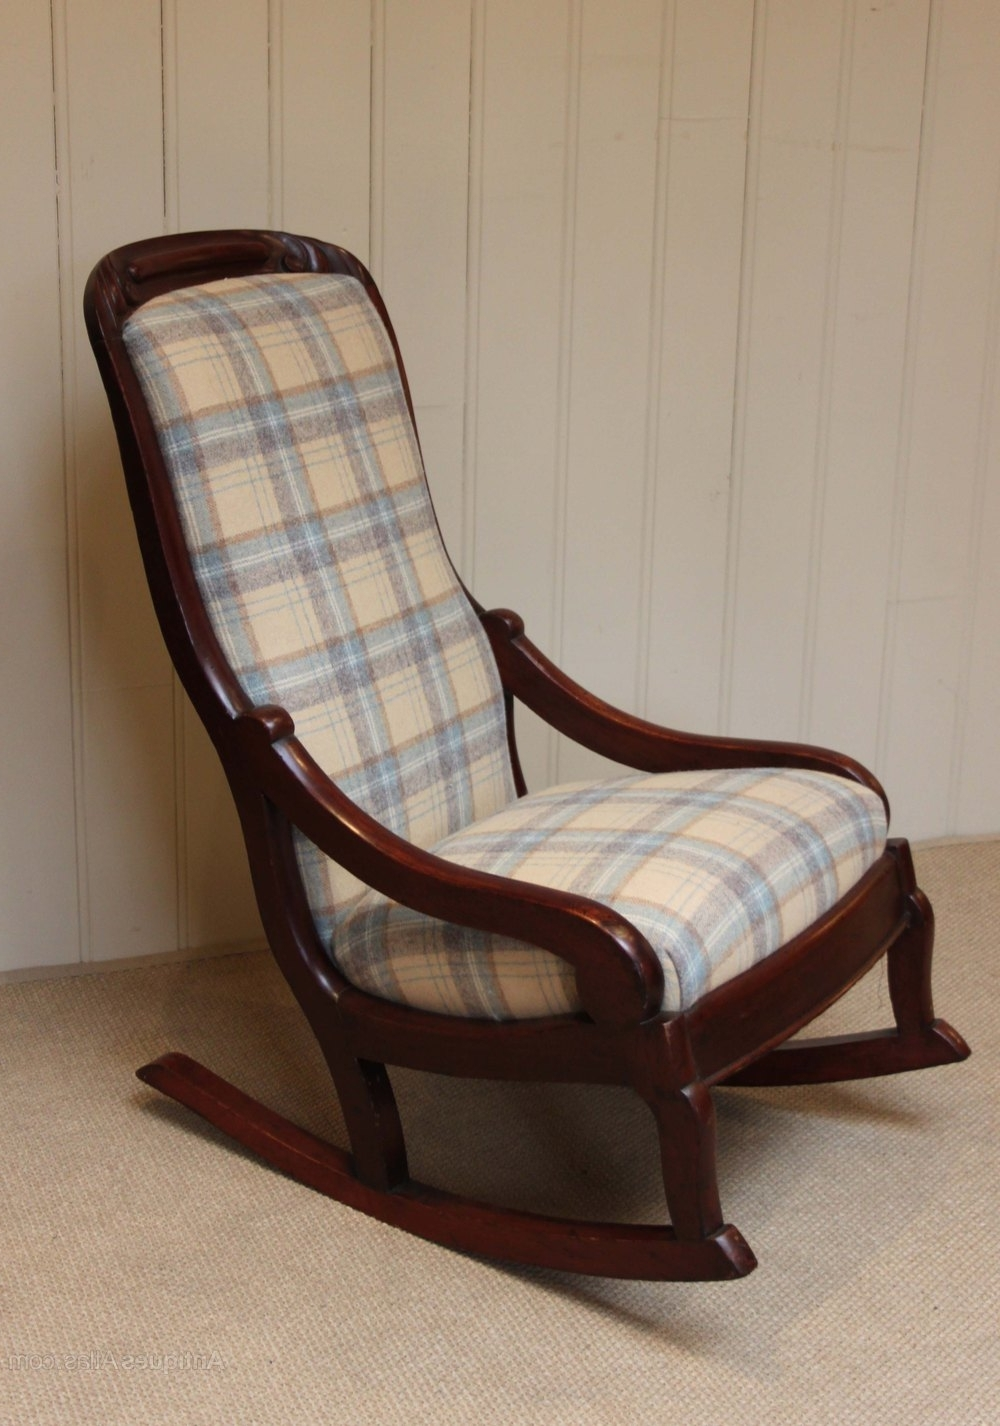 Fashionable Late Victorian Upholstered Rocking Chair – Antiques Atlas For Upholstered Rocking Chairs (View 3 of 15)